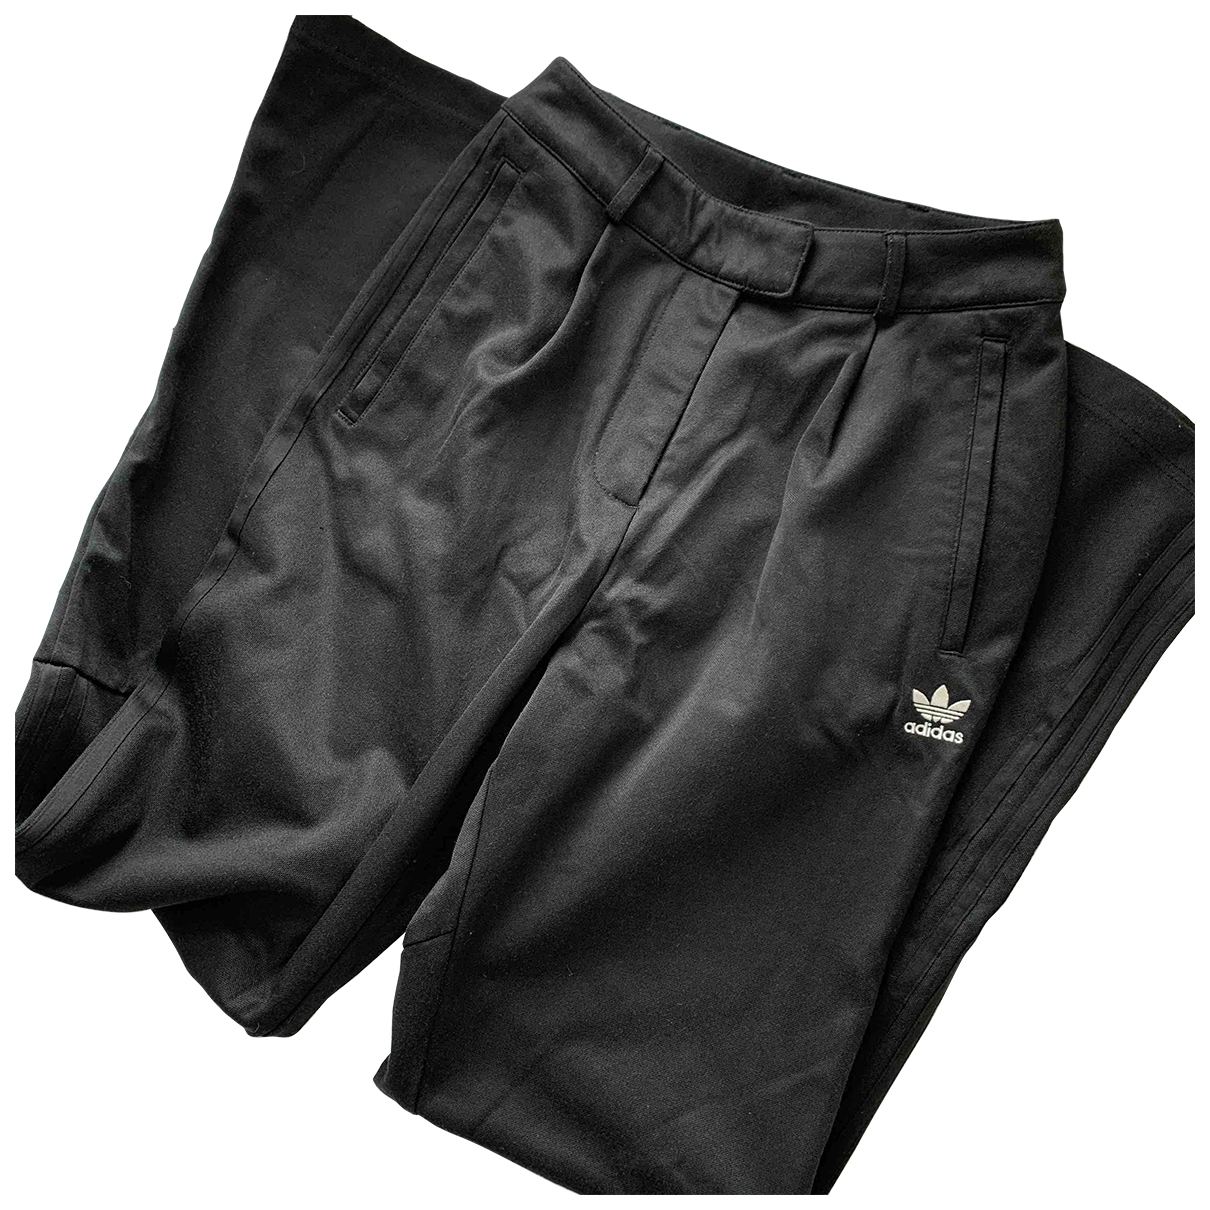 Adidas \N Black Cotton Trousers for Women 4 UK